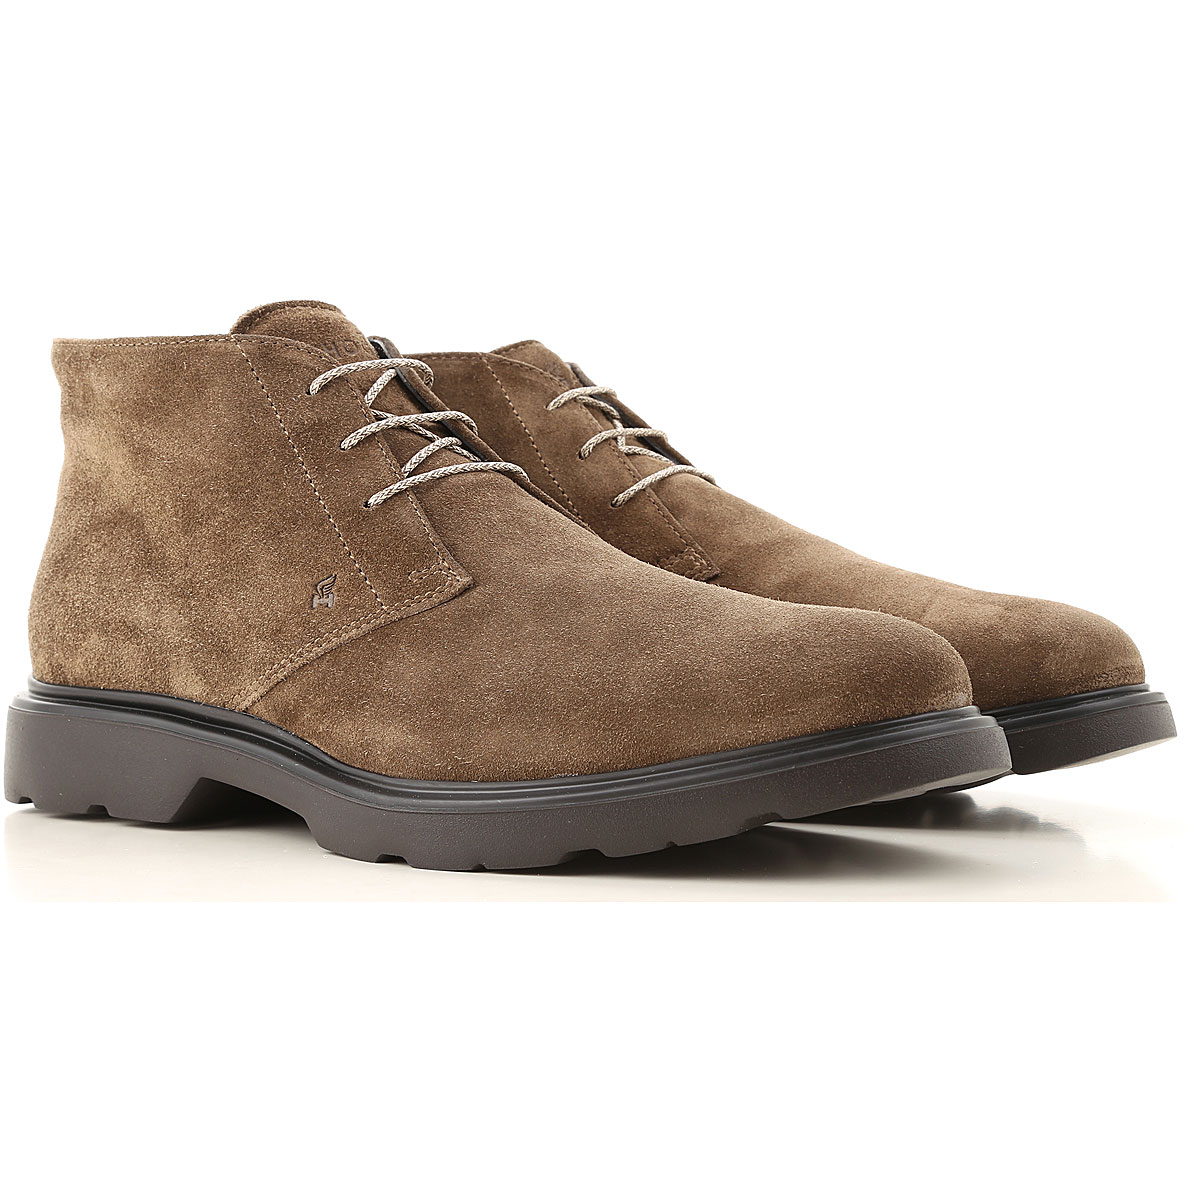 Hogan Desert Boots Chukka for Men On Sale, Mud, Suede leather, 2019, 10.5 7.5 8.5 9.5